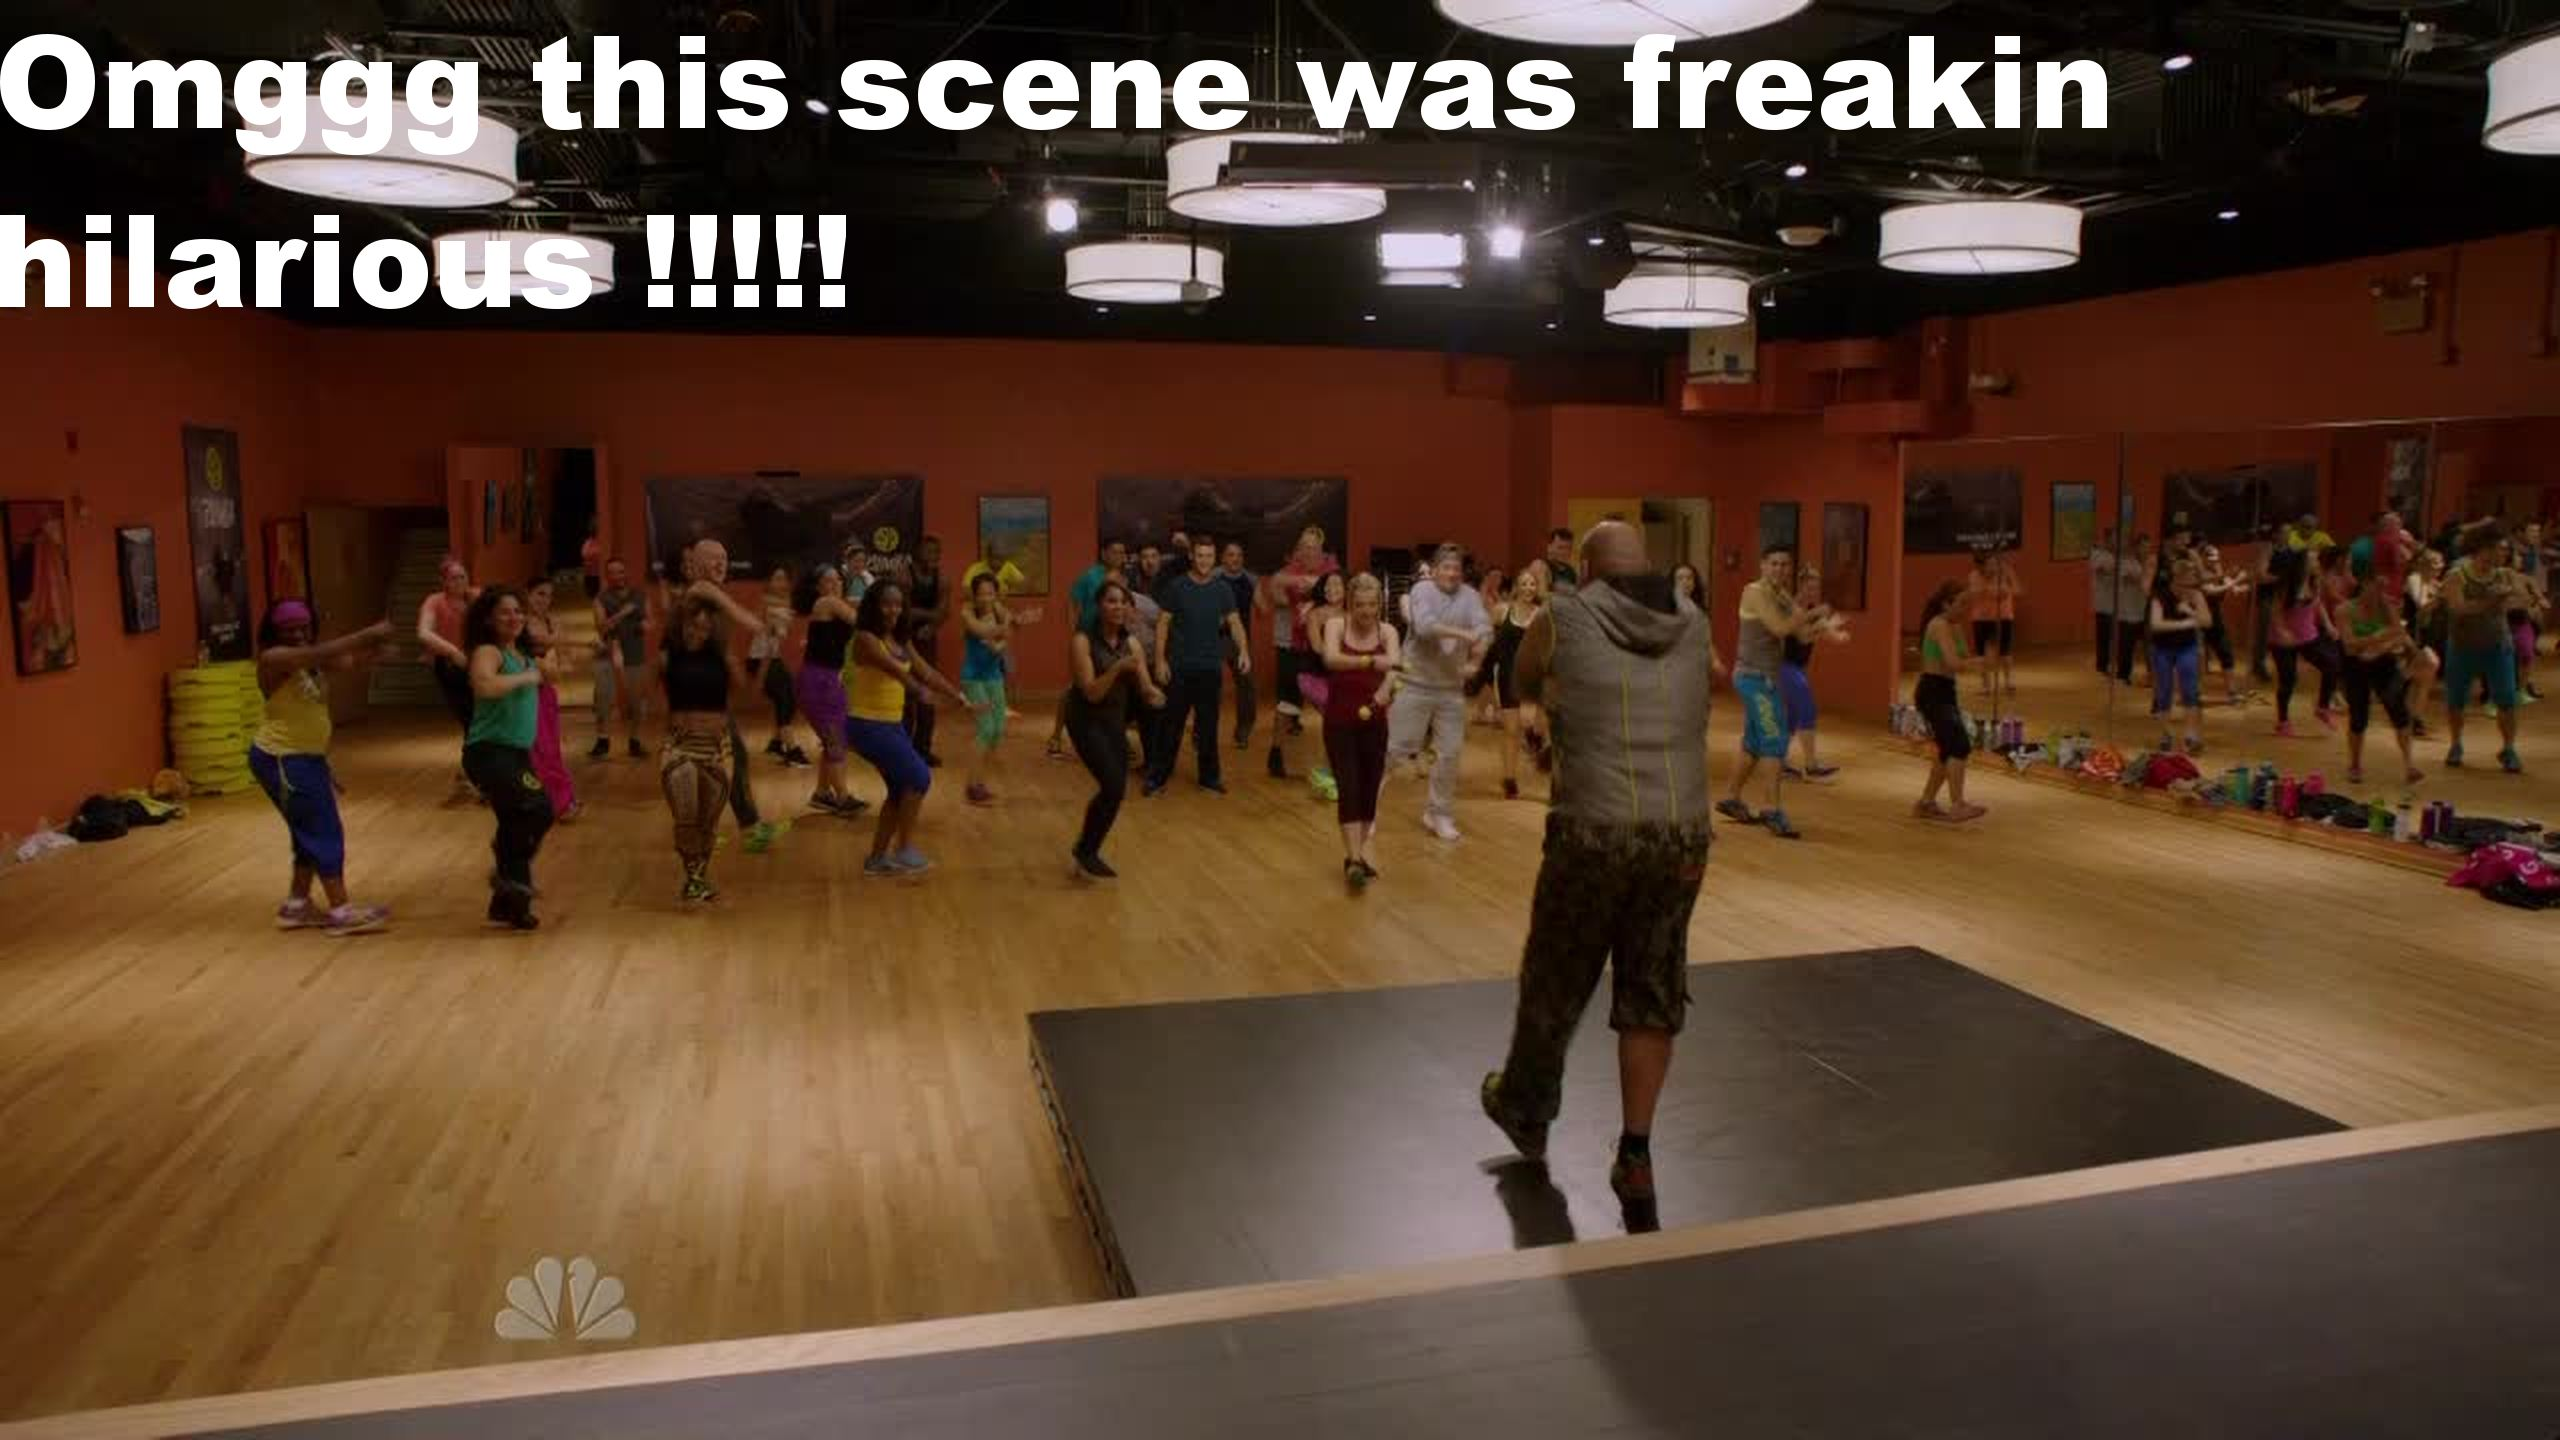 Omggg once again this zumba scene with the crew of CF was freakin hilarious and awesome, I was laughing so much ahhaha !!!!